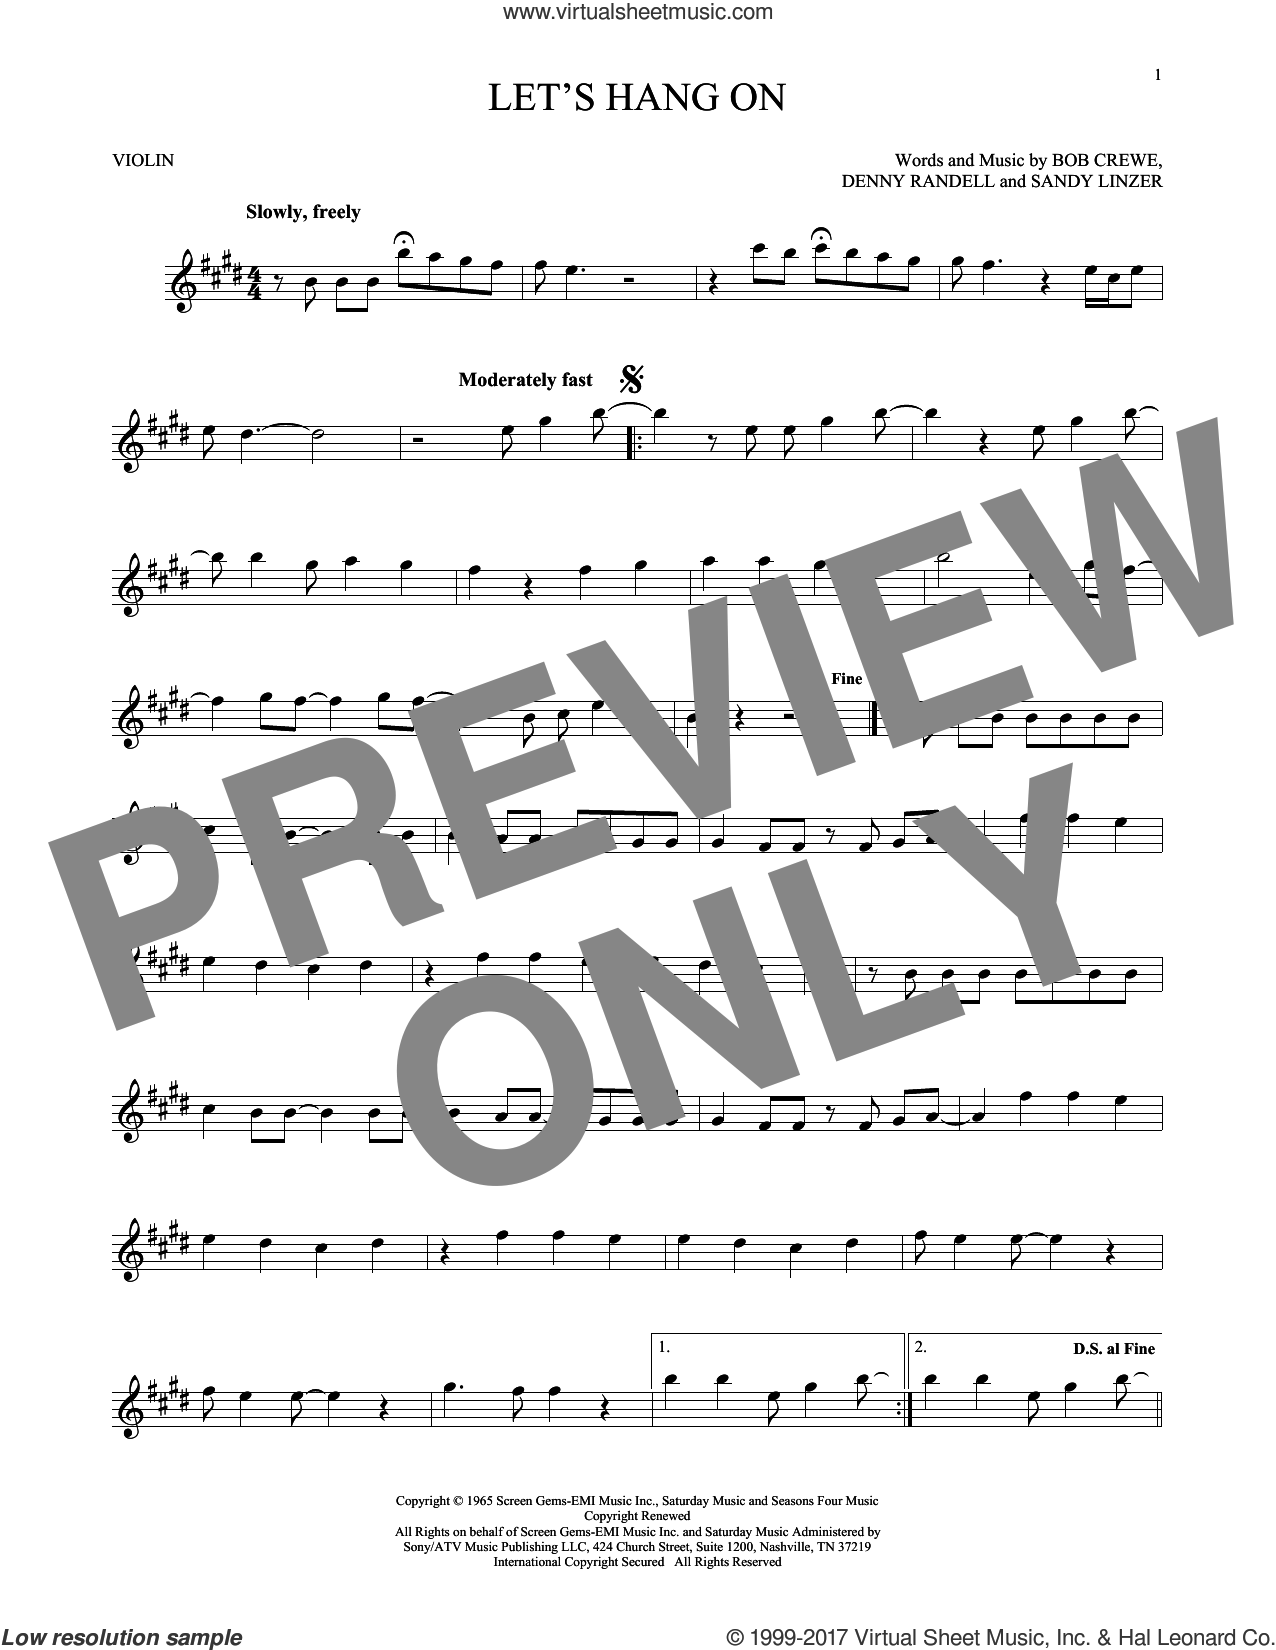 Let's Hang On sheet music for violin solo by The 4 Seasons, Manhattan Transfer, Bob Crewe and Sandy Linzer, intermediate. Score Image Preview.